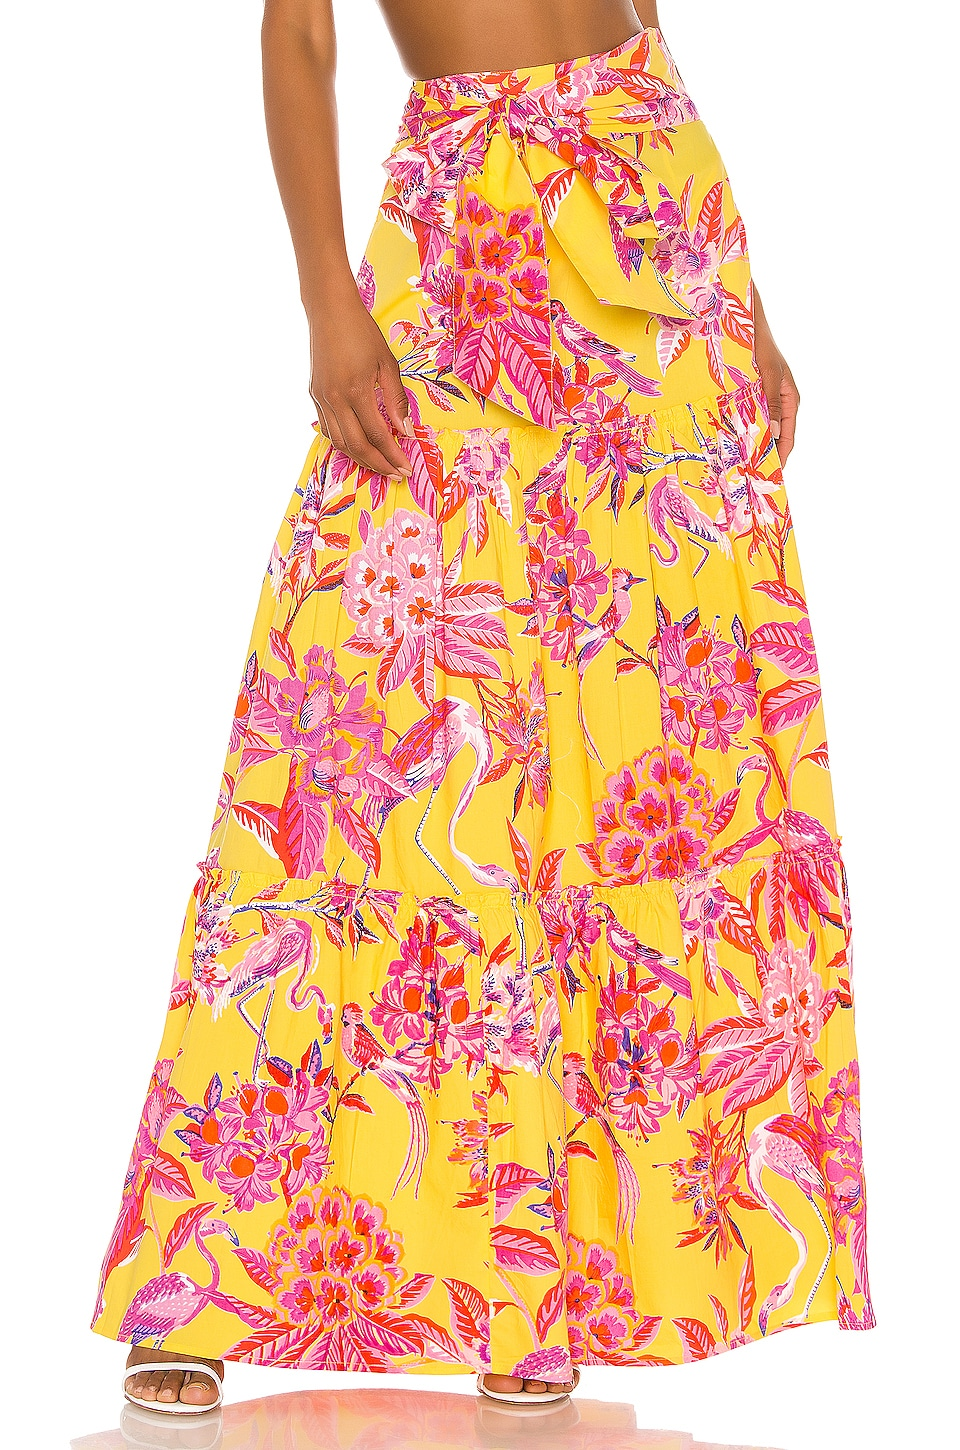 Banjanan Discovery Skirt in Flamingo Rhododendron Vibrant Yellow